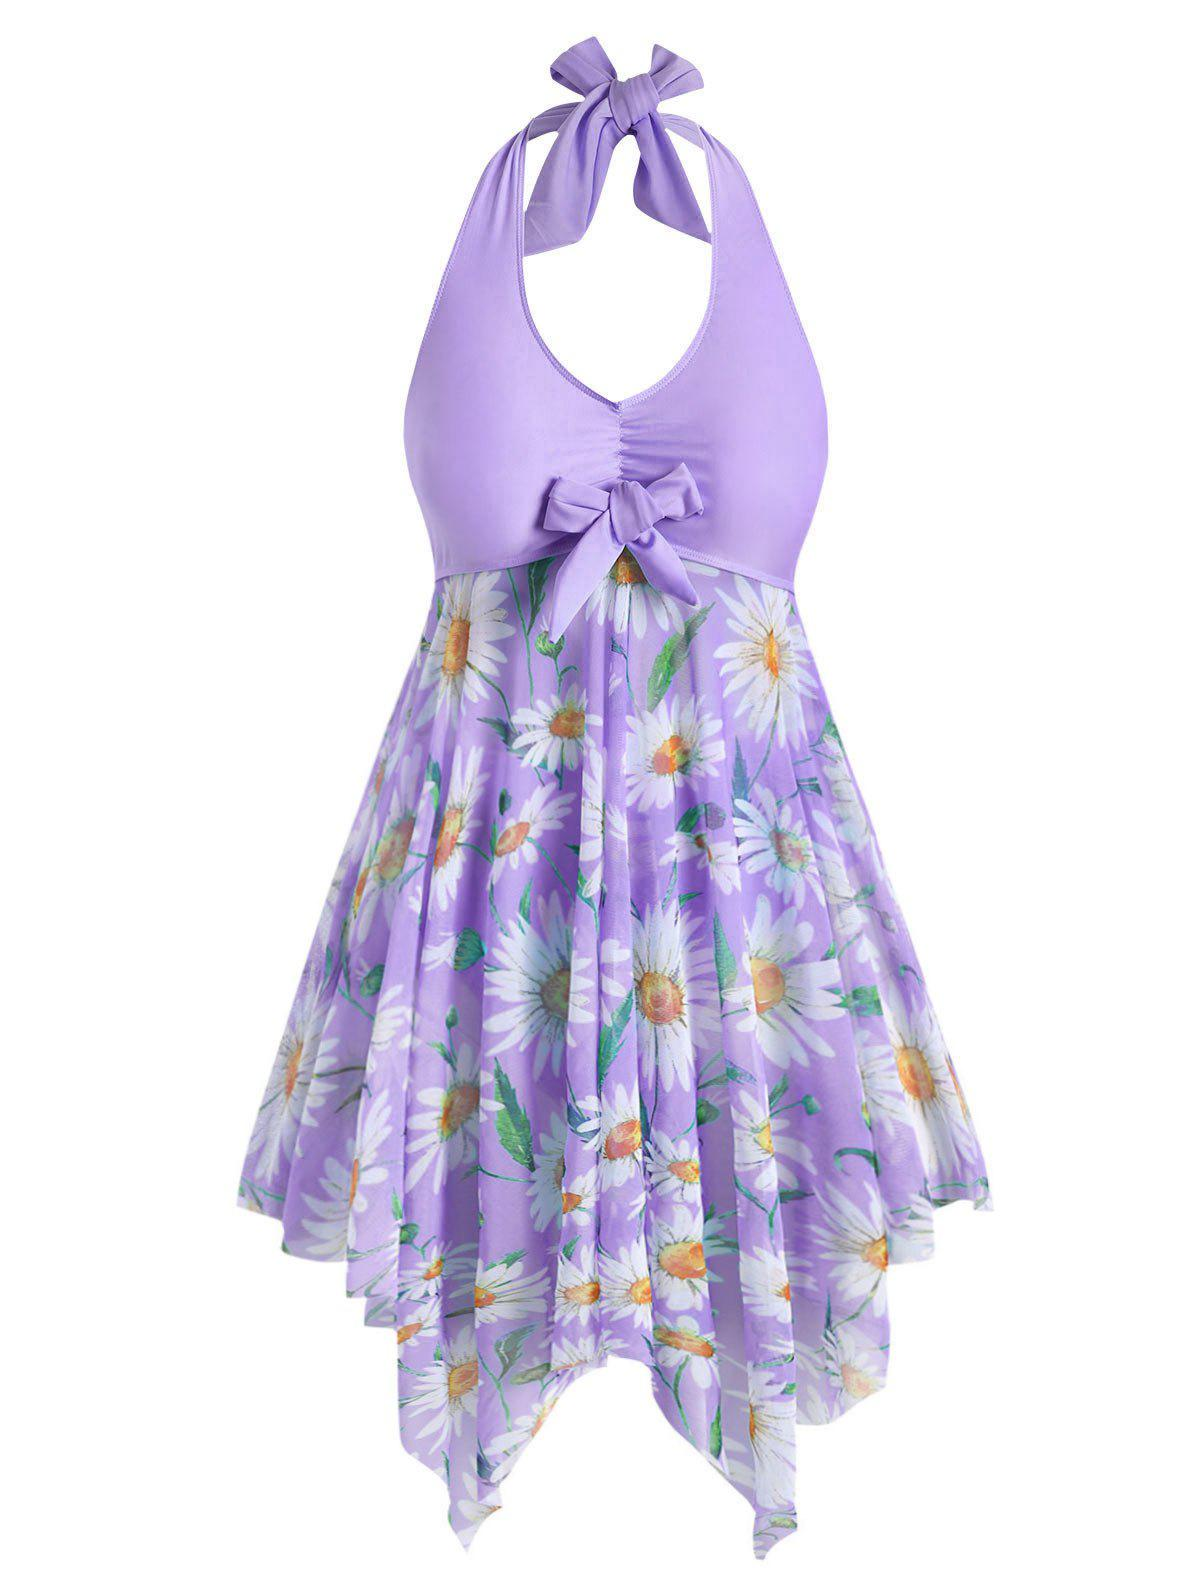 Plus Size Sunflower Print Backless Handkerchief Tankini Swimsuit Rosegal